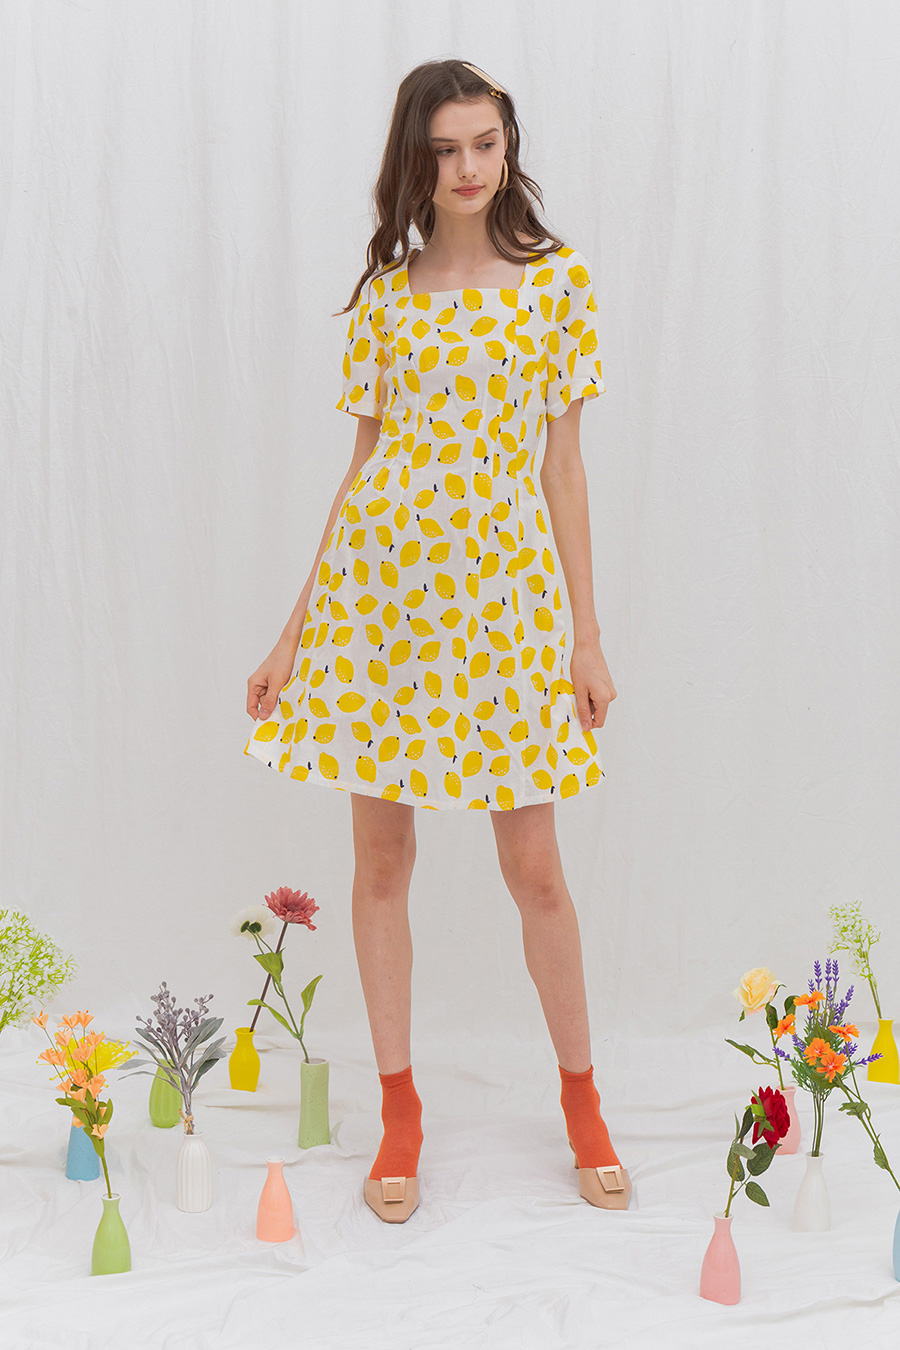 LARKIN DRESS - LEMONADE [BY MODPARADE]